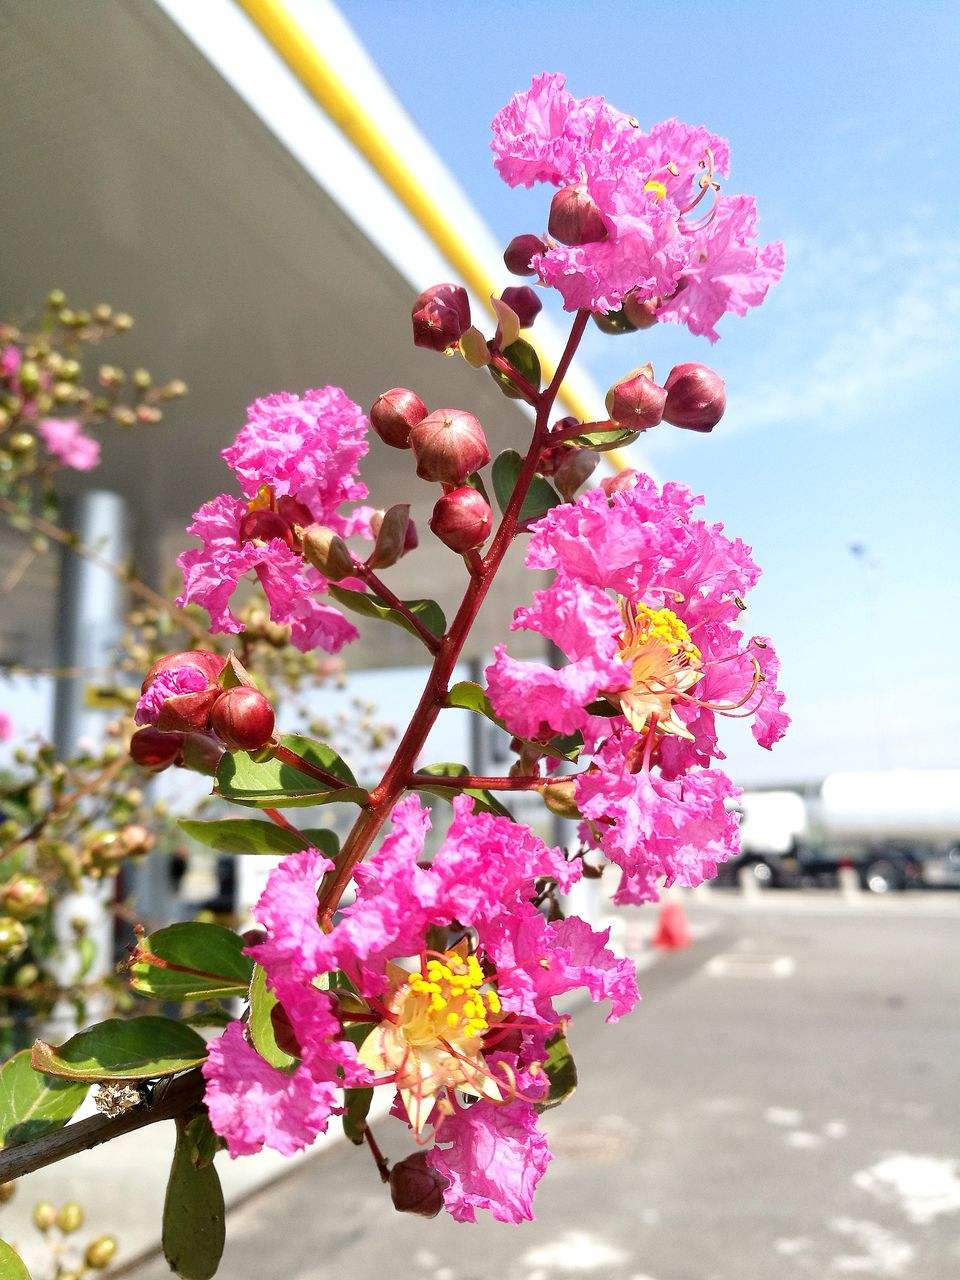 flowering plant, flower, plant, freshness, pink color, fragility, beauty in nature, growth, vulnerability, close-up, petal, focus on foreground, nature, blossom, no people, day, flower head, inflorescence, architecture, springtime, outdoors, pollen, cherry blossom, lantana, cherry tree, purple